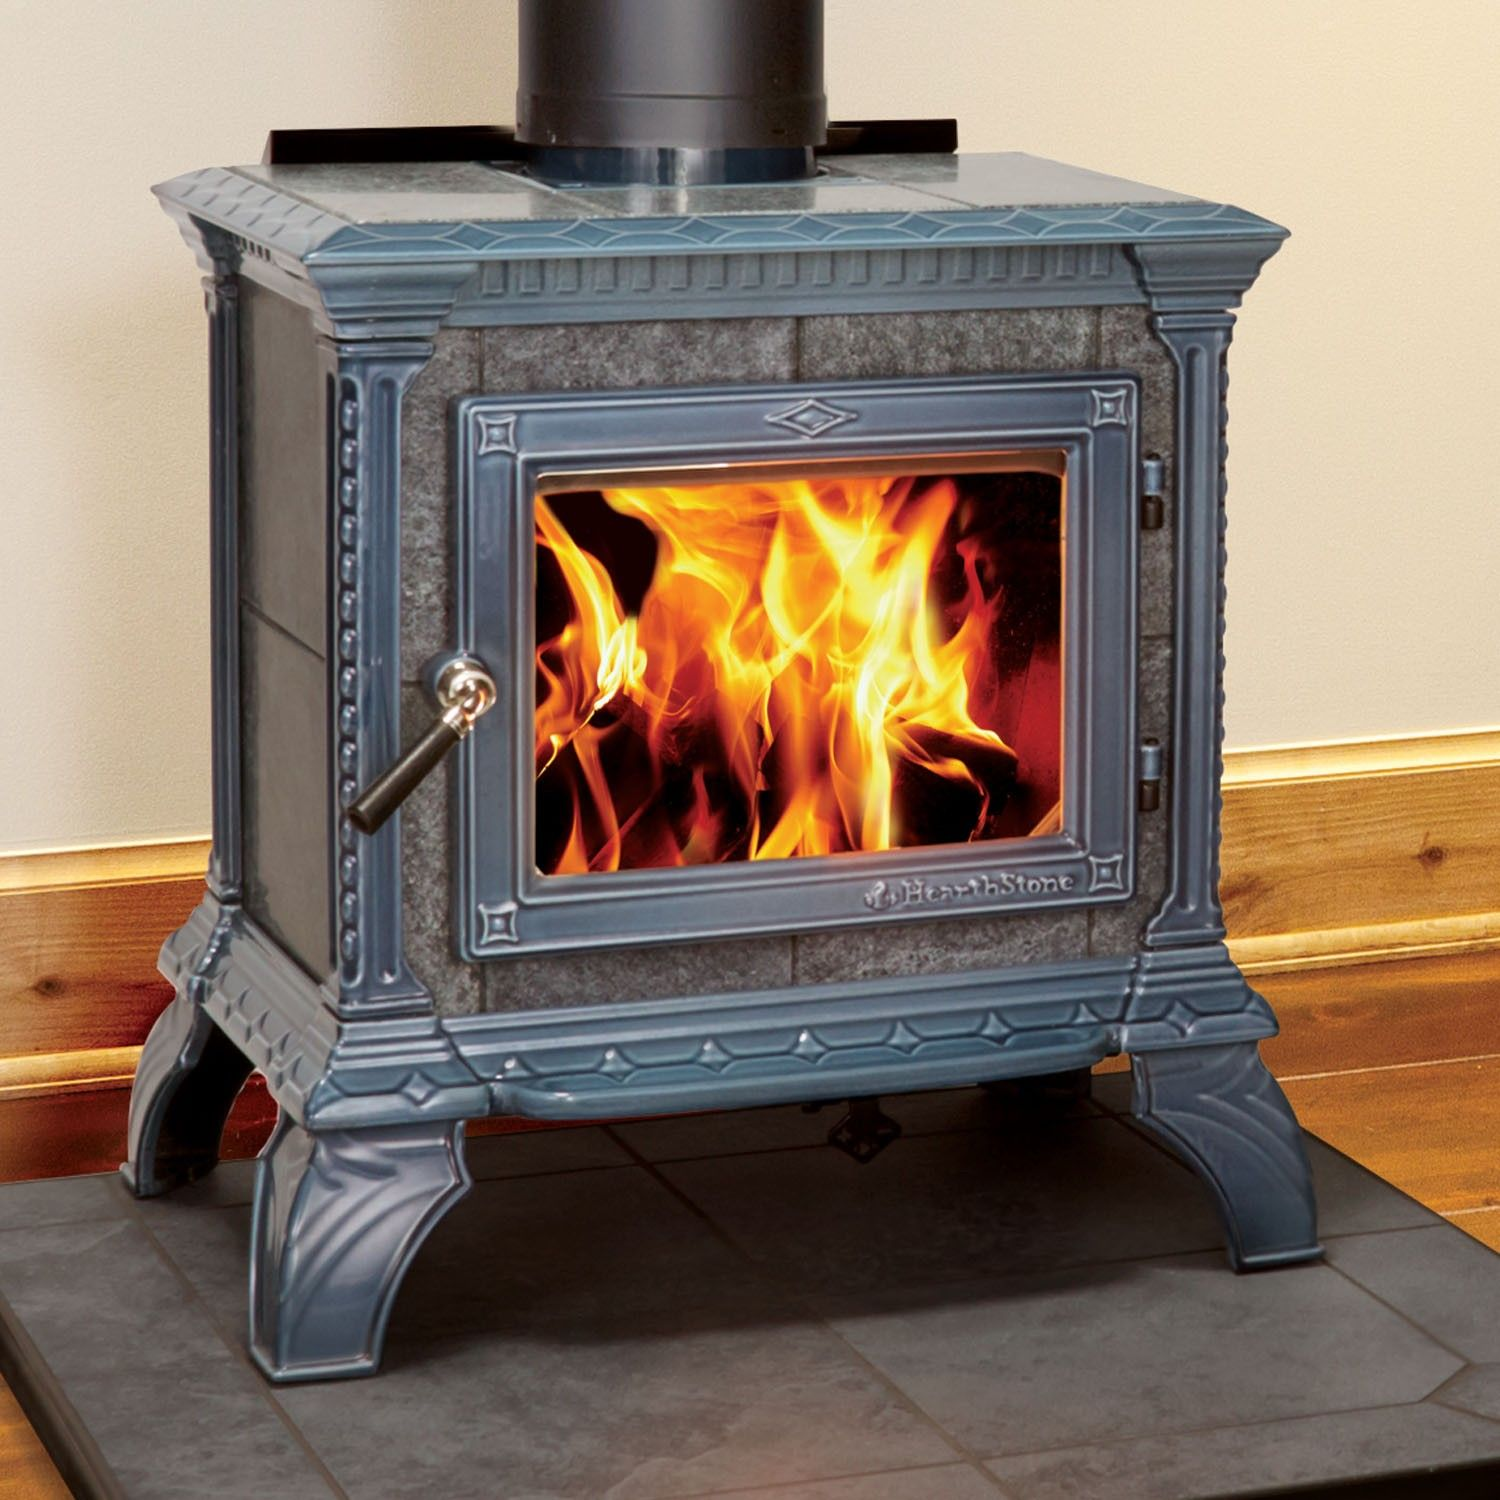 Tribute 8040 Wood Stove With With Seafoam Majolica Enamel